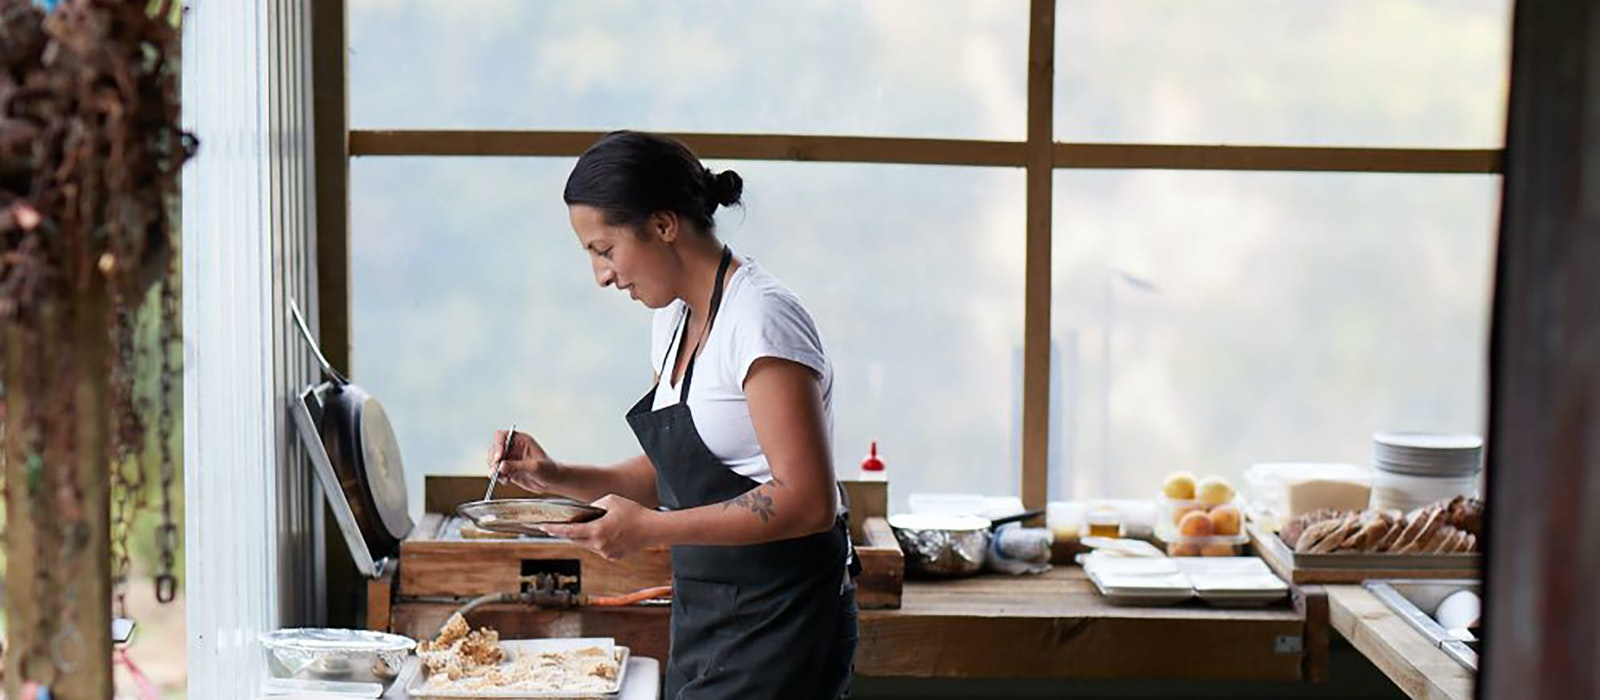 Monique Fiso is one of the talented chefs bringing international recognition to New Zealand's traditional culinary style.